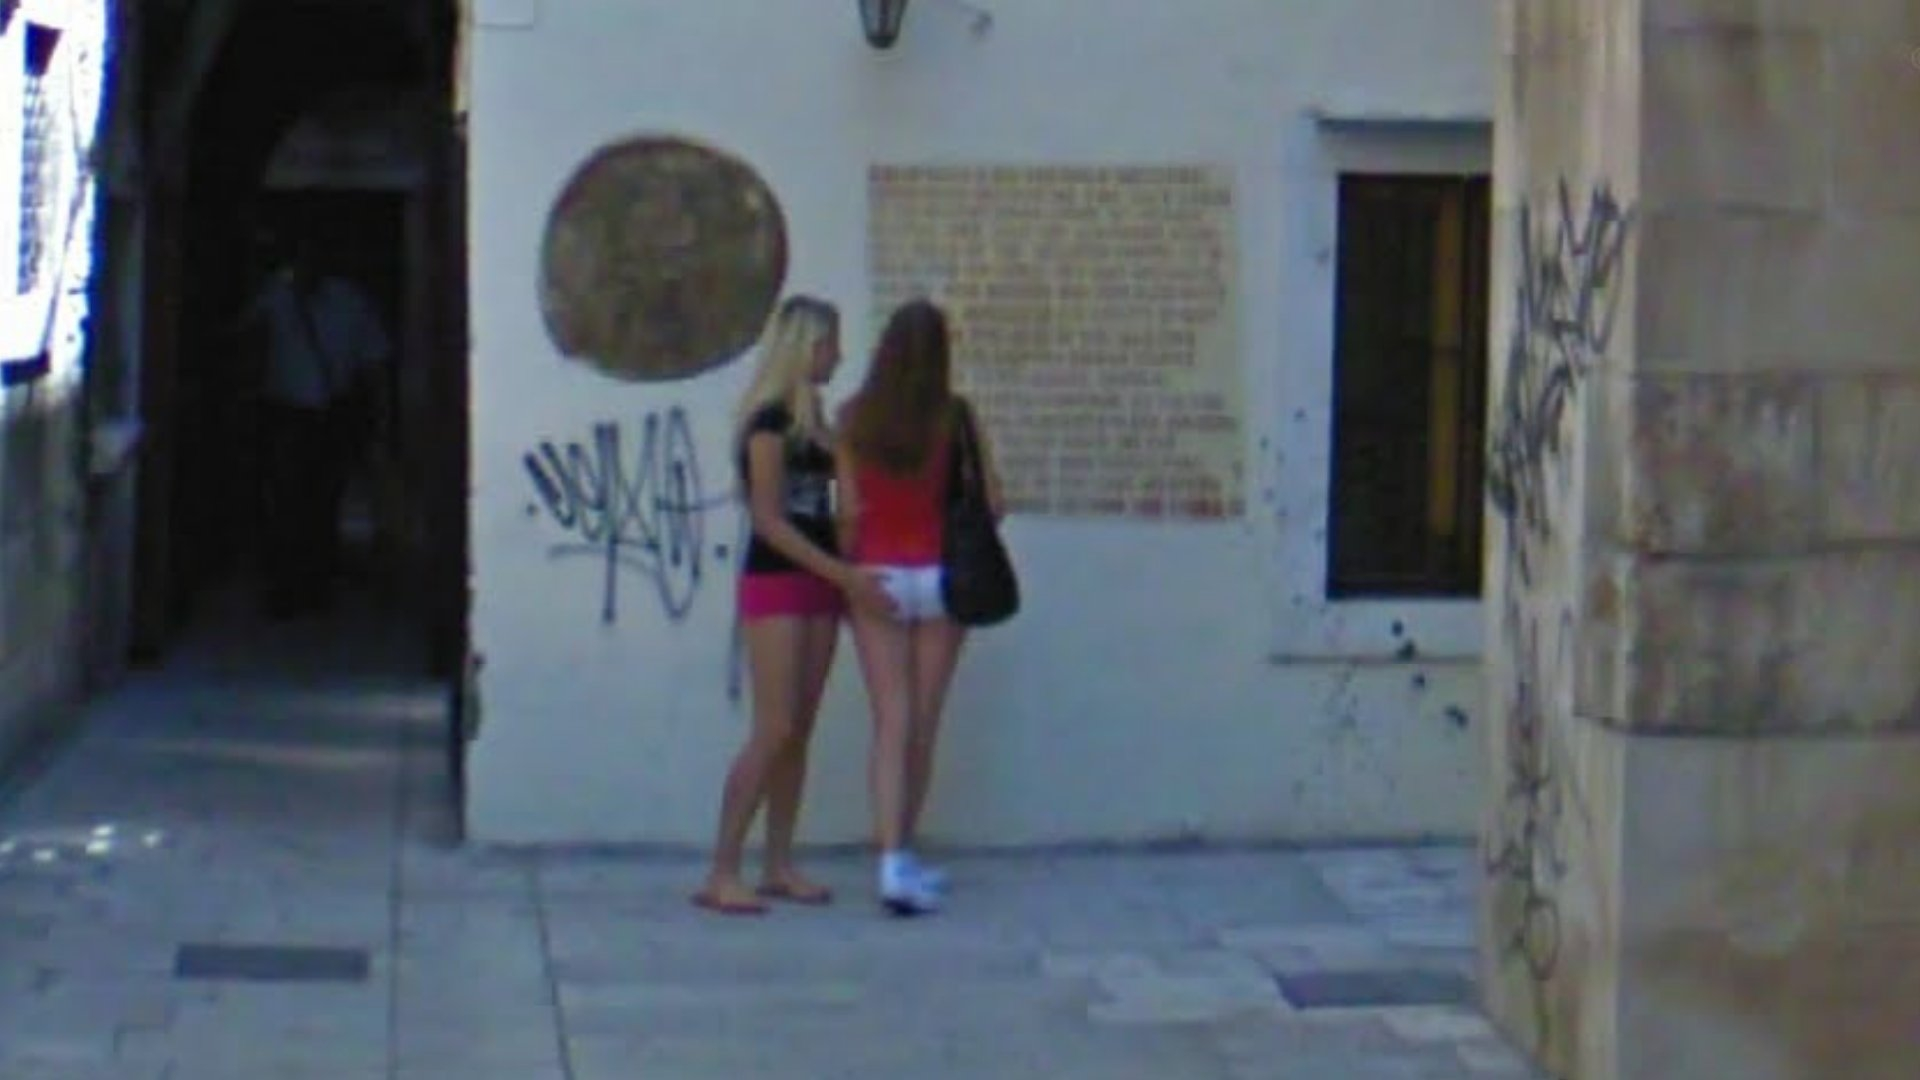 These two girls are good friends I take it?